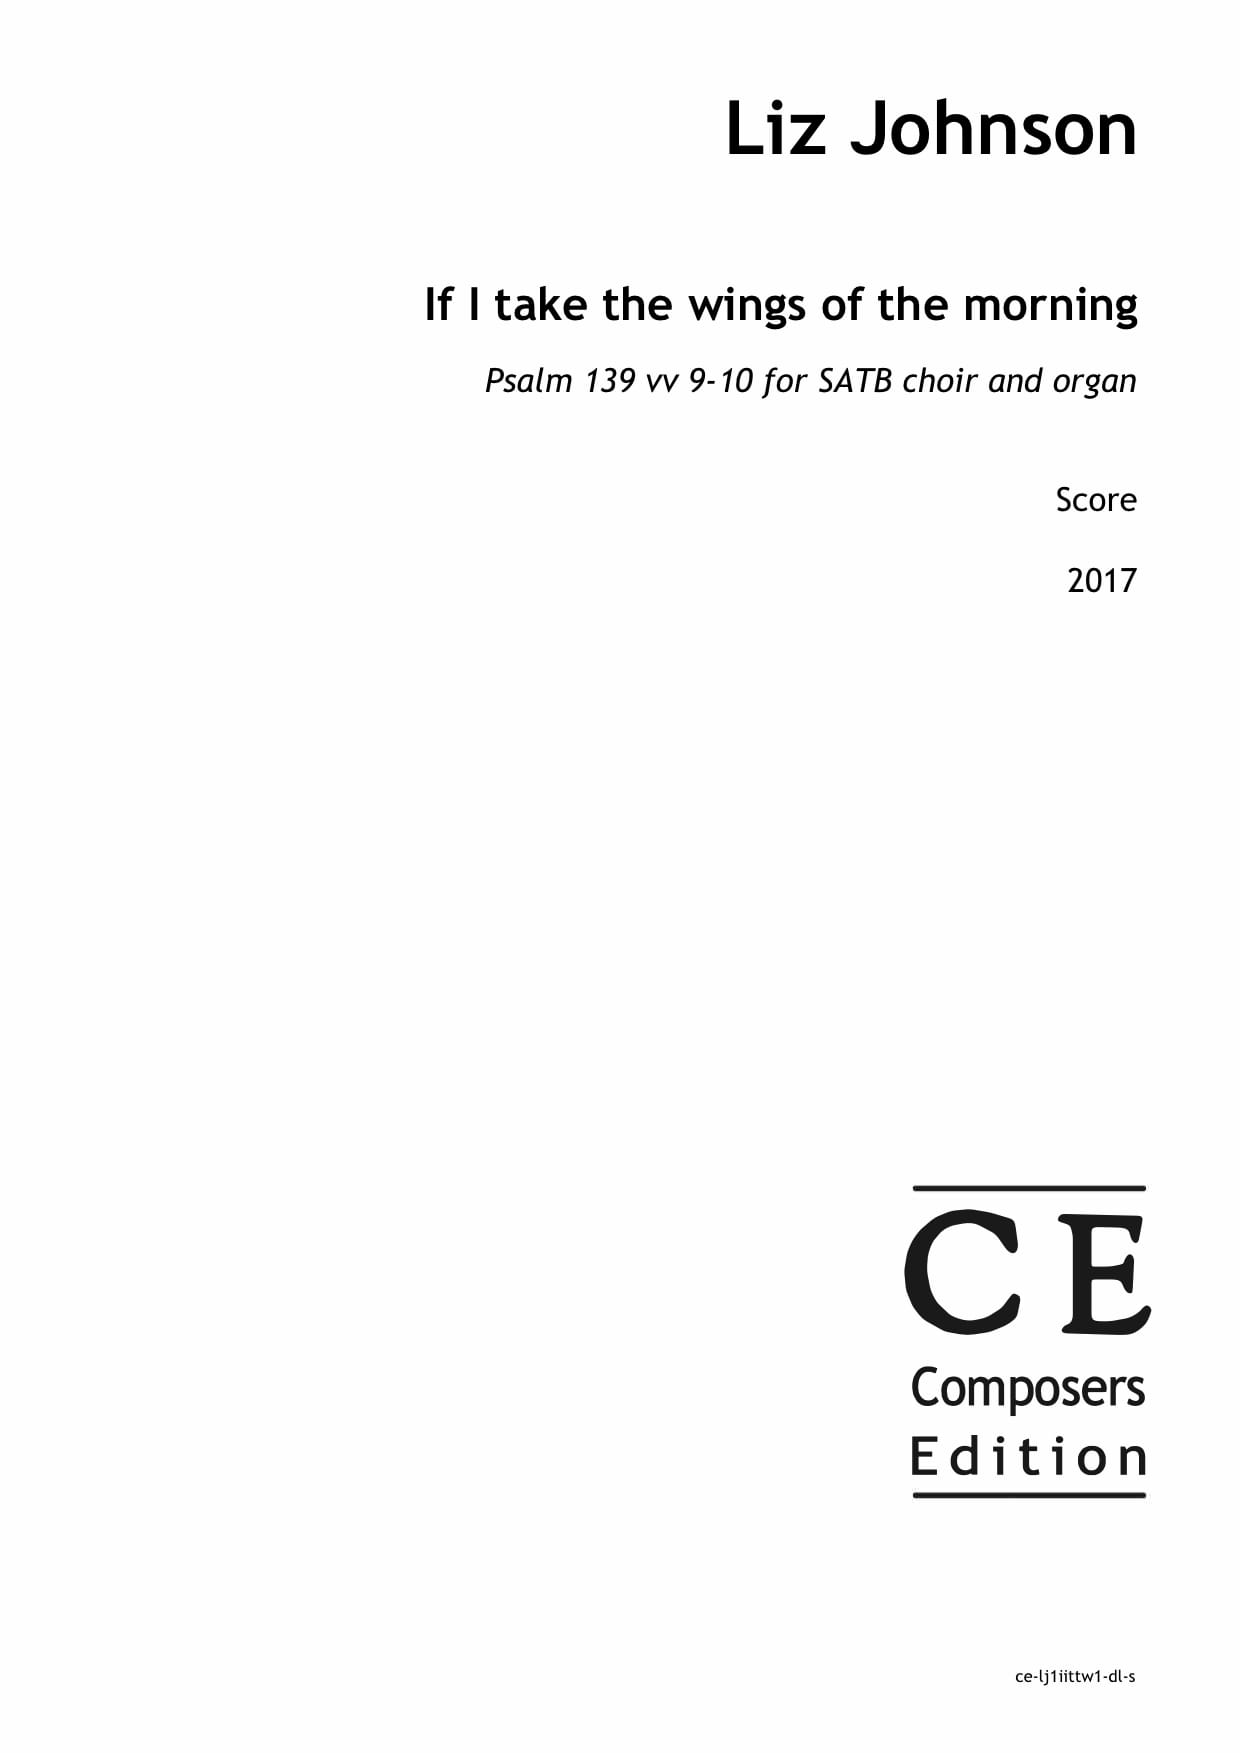 Liz Johnson: If I take the wings of the morning Psalm 139 vv 9-10 for SATB choir and organ